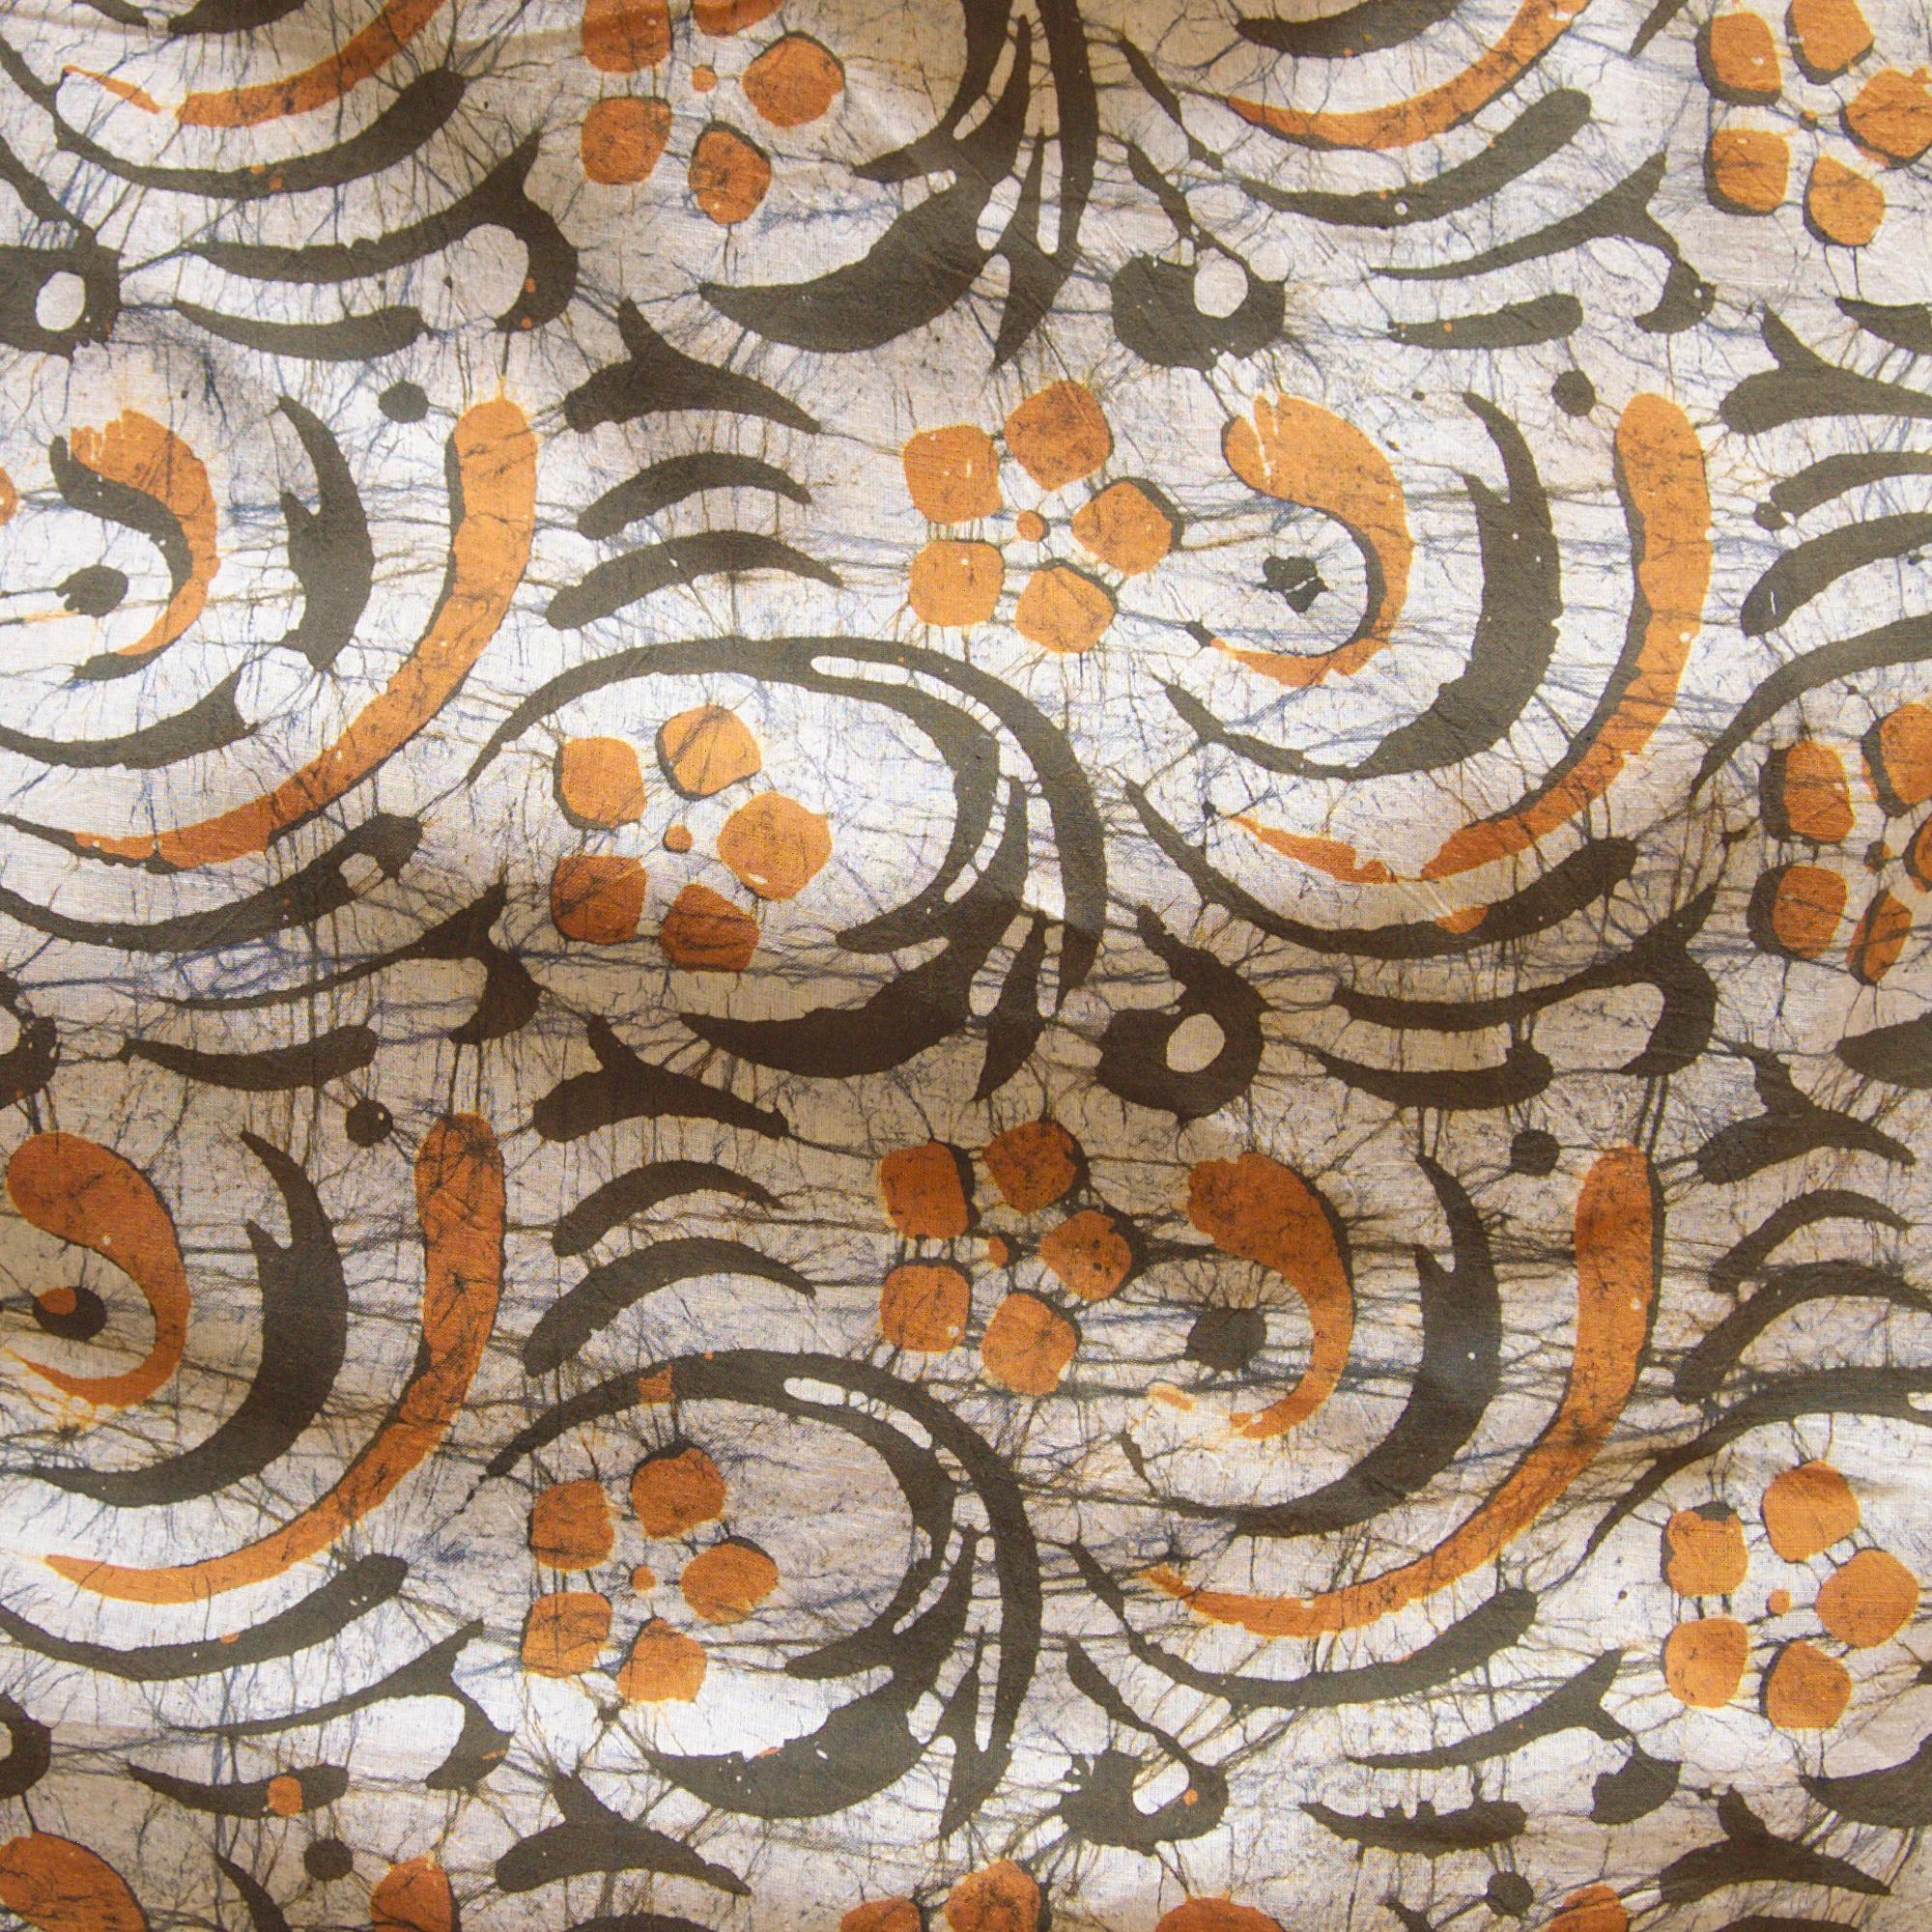 1 - SHA18 - 100% Block-Printed Batik Cotton Fabric From India - Stirred Not Shaken Motif - Contrast - Live